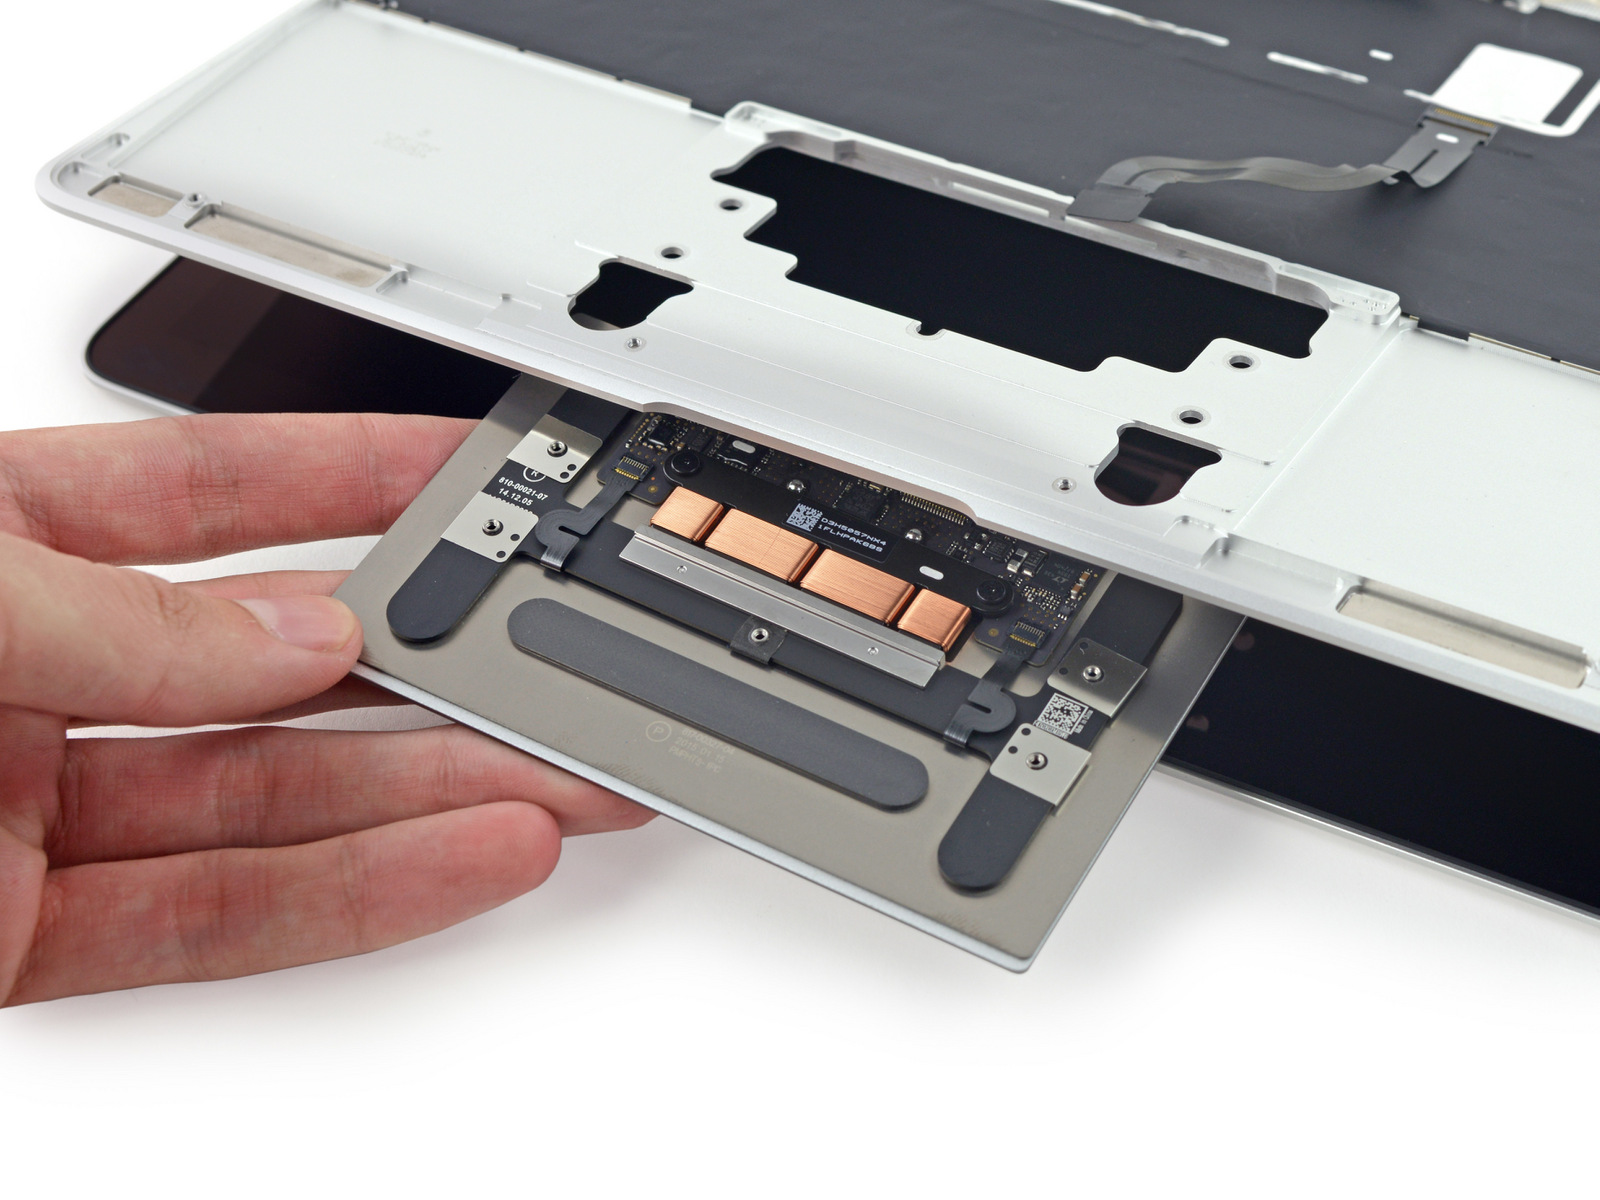 The Force Touch trackpad is a bit slimmer than the one in the MacBook Pro but is essentially the same part.